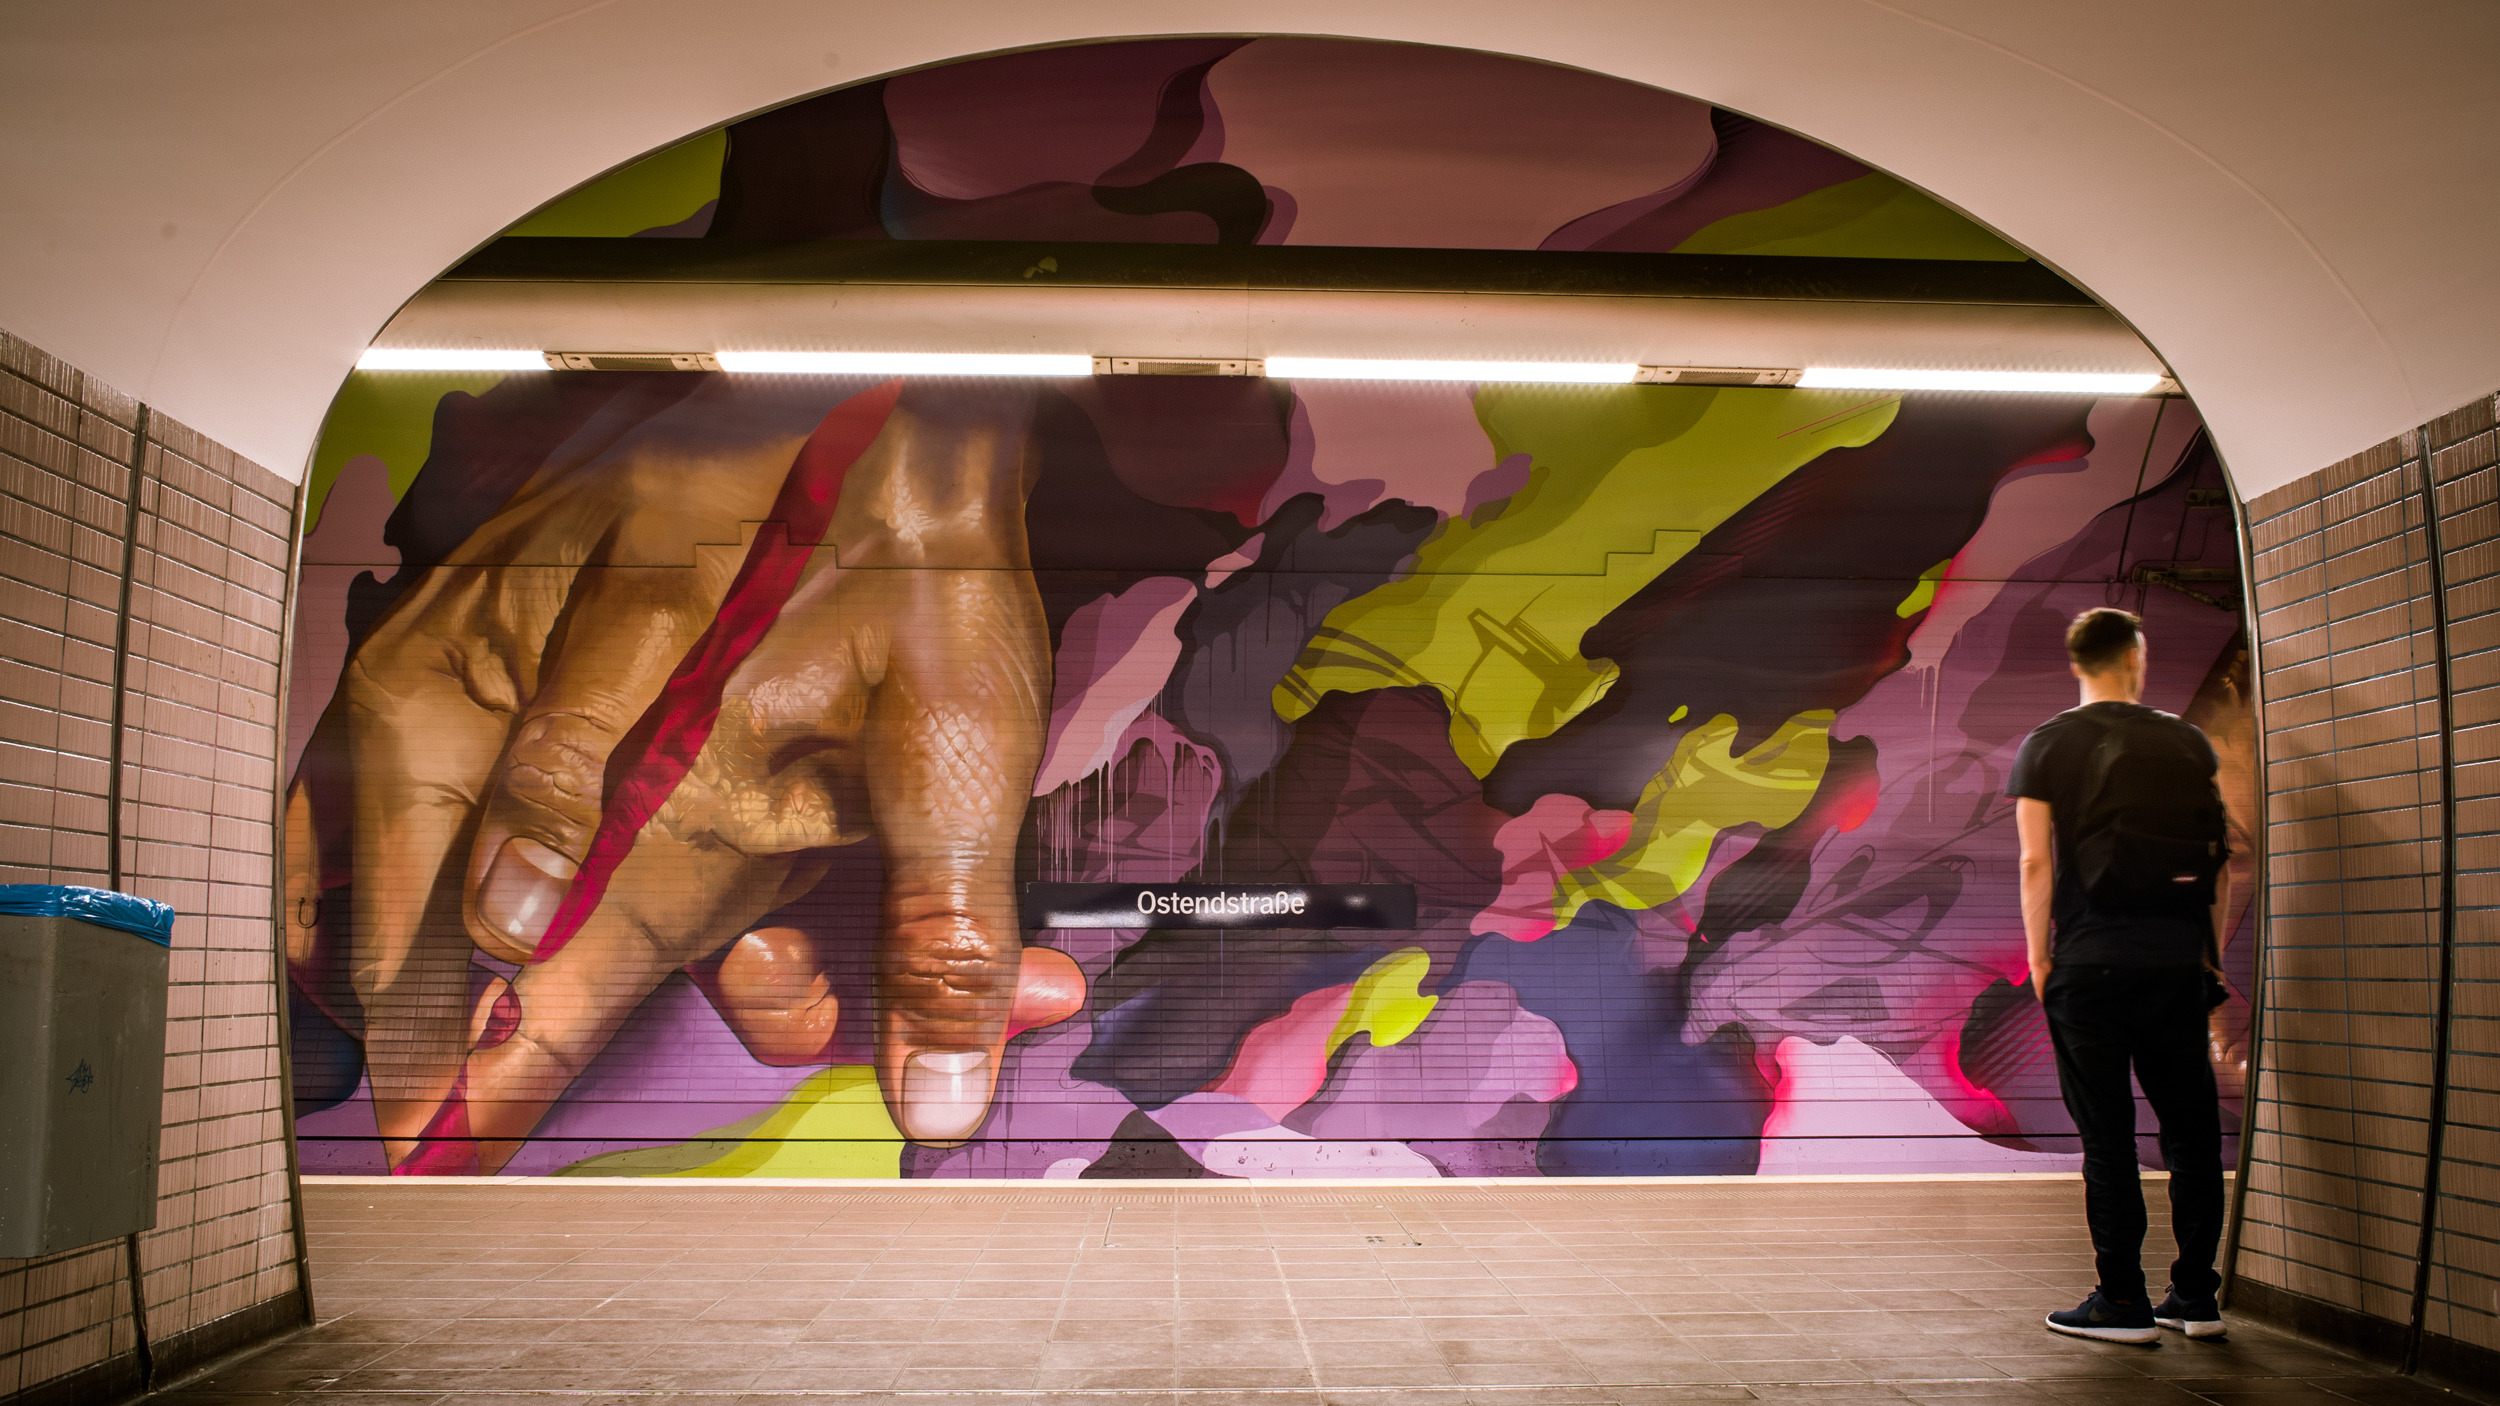 A work by Does - Ostendstrasse frankfurt germany tunnel 34